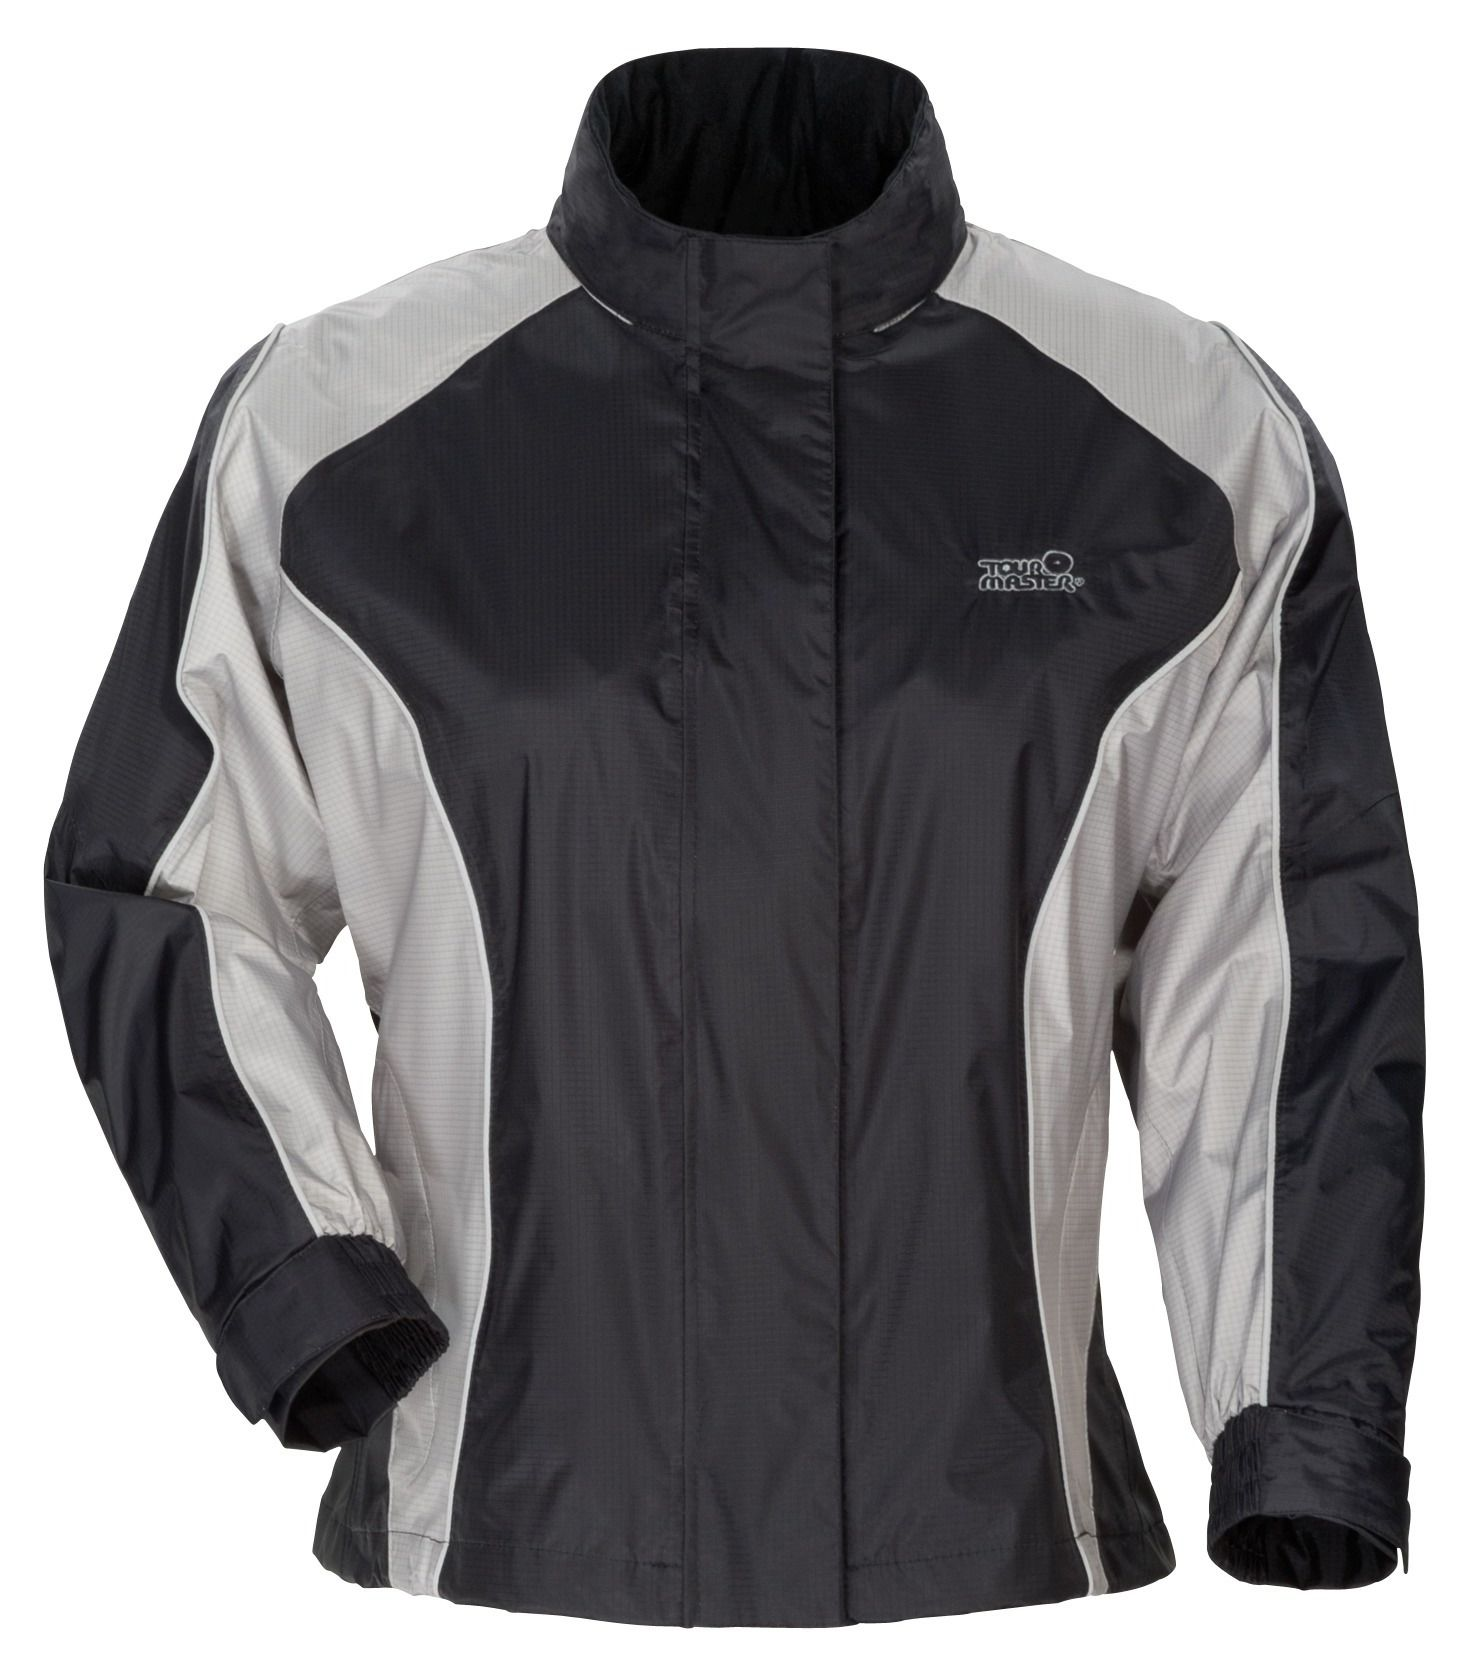 sentinel women Tour master women's sentinel rain suit pants features: waterproof and breathable rip stop nylon shell with sealed seams is rated mvm 5000 for maximum breathability.